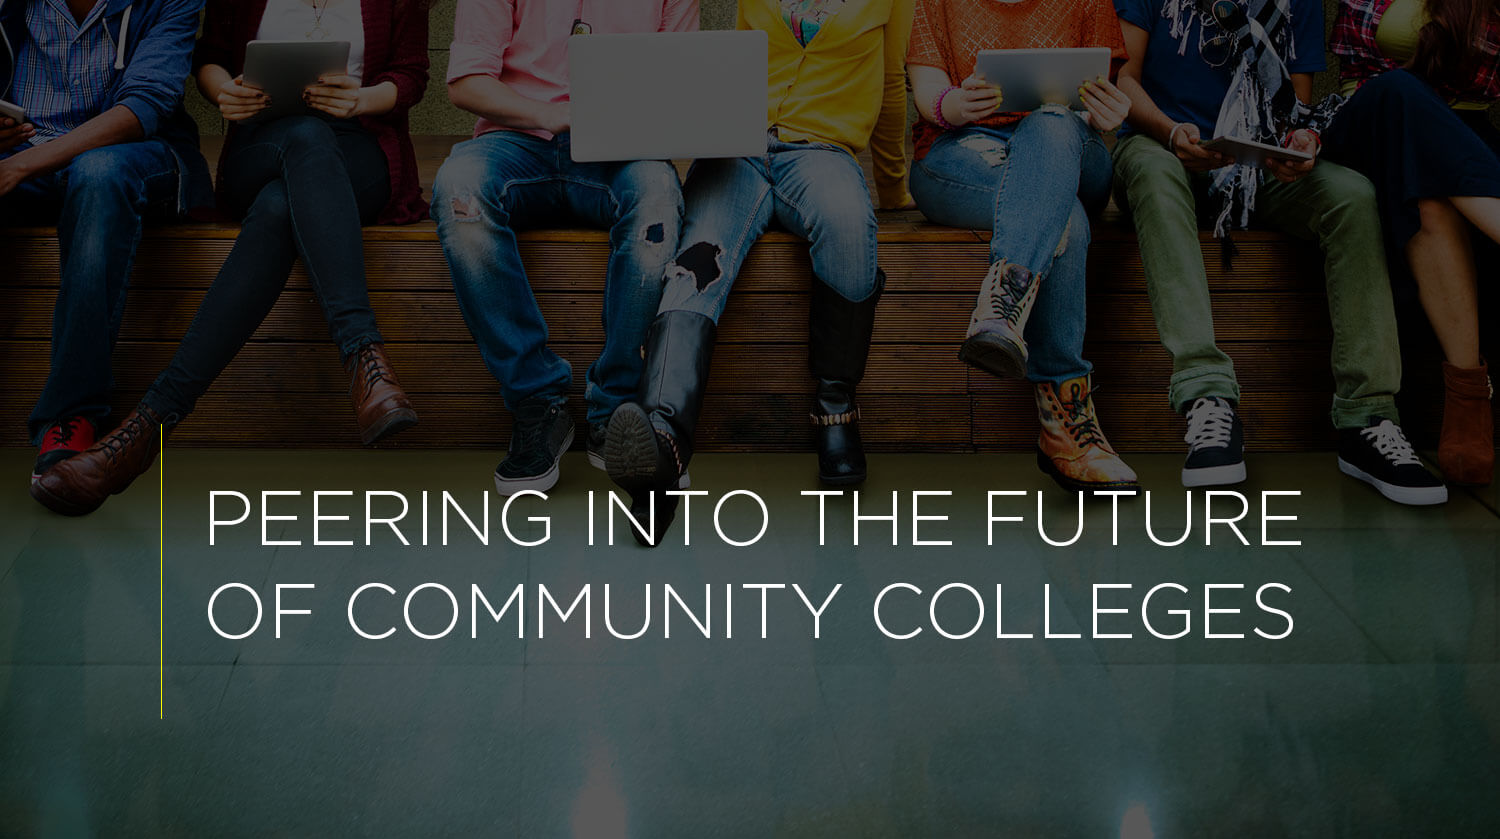 Peering into the Future of Community Colleges